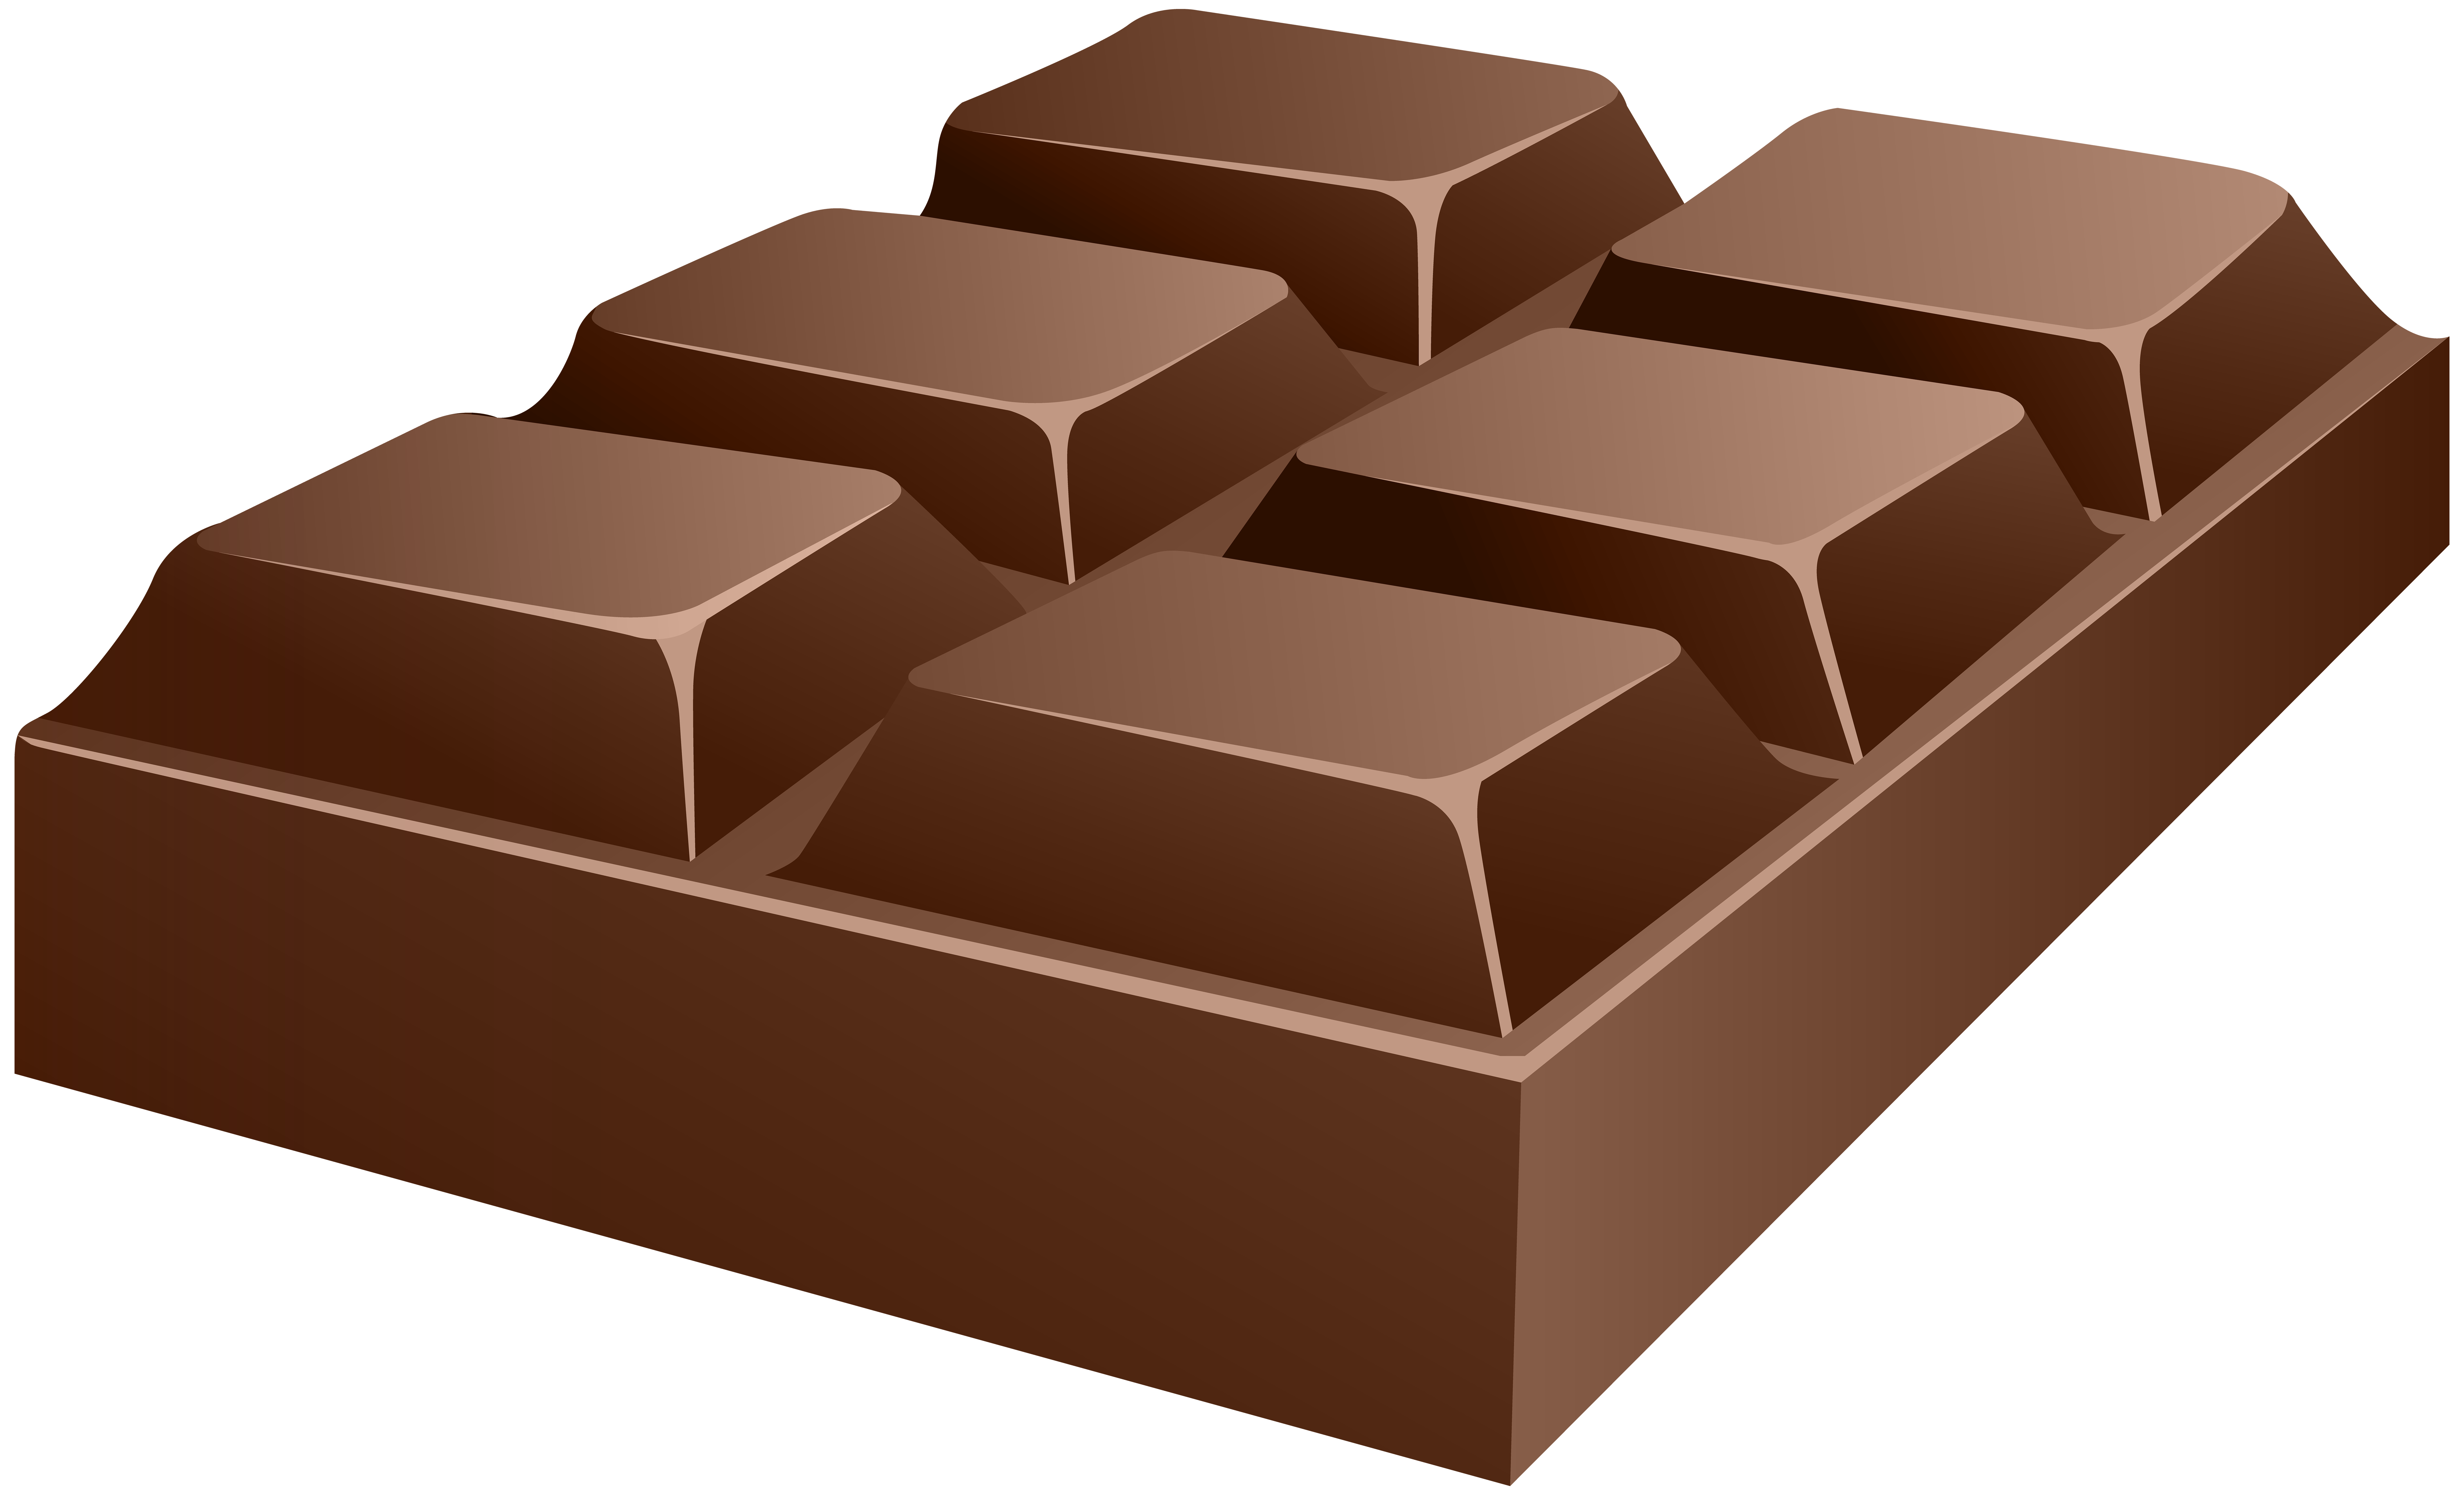 Rose clipart chocolate. Png clip art image